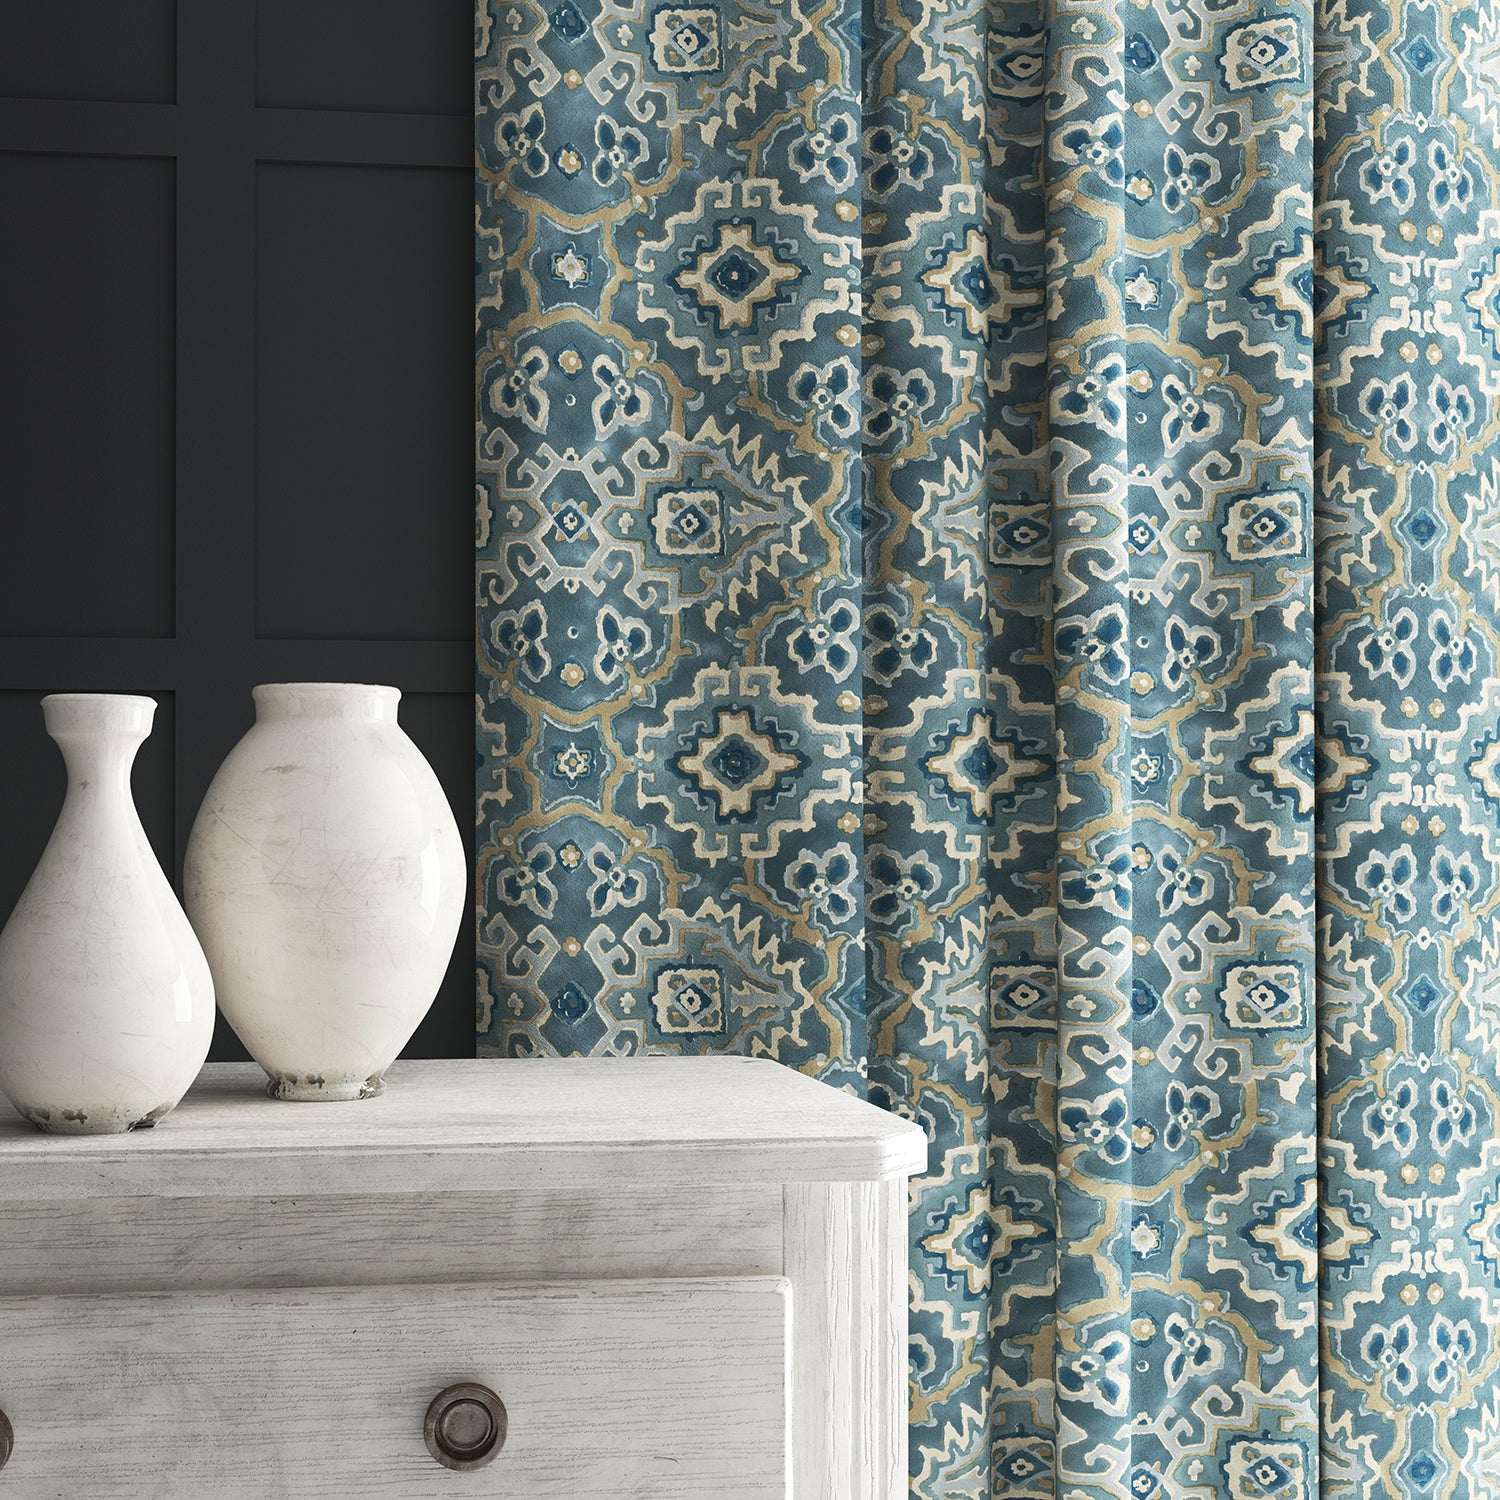 Velvet curtain in a printed velvet fabric with an oriental geometric design in blue colours